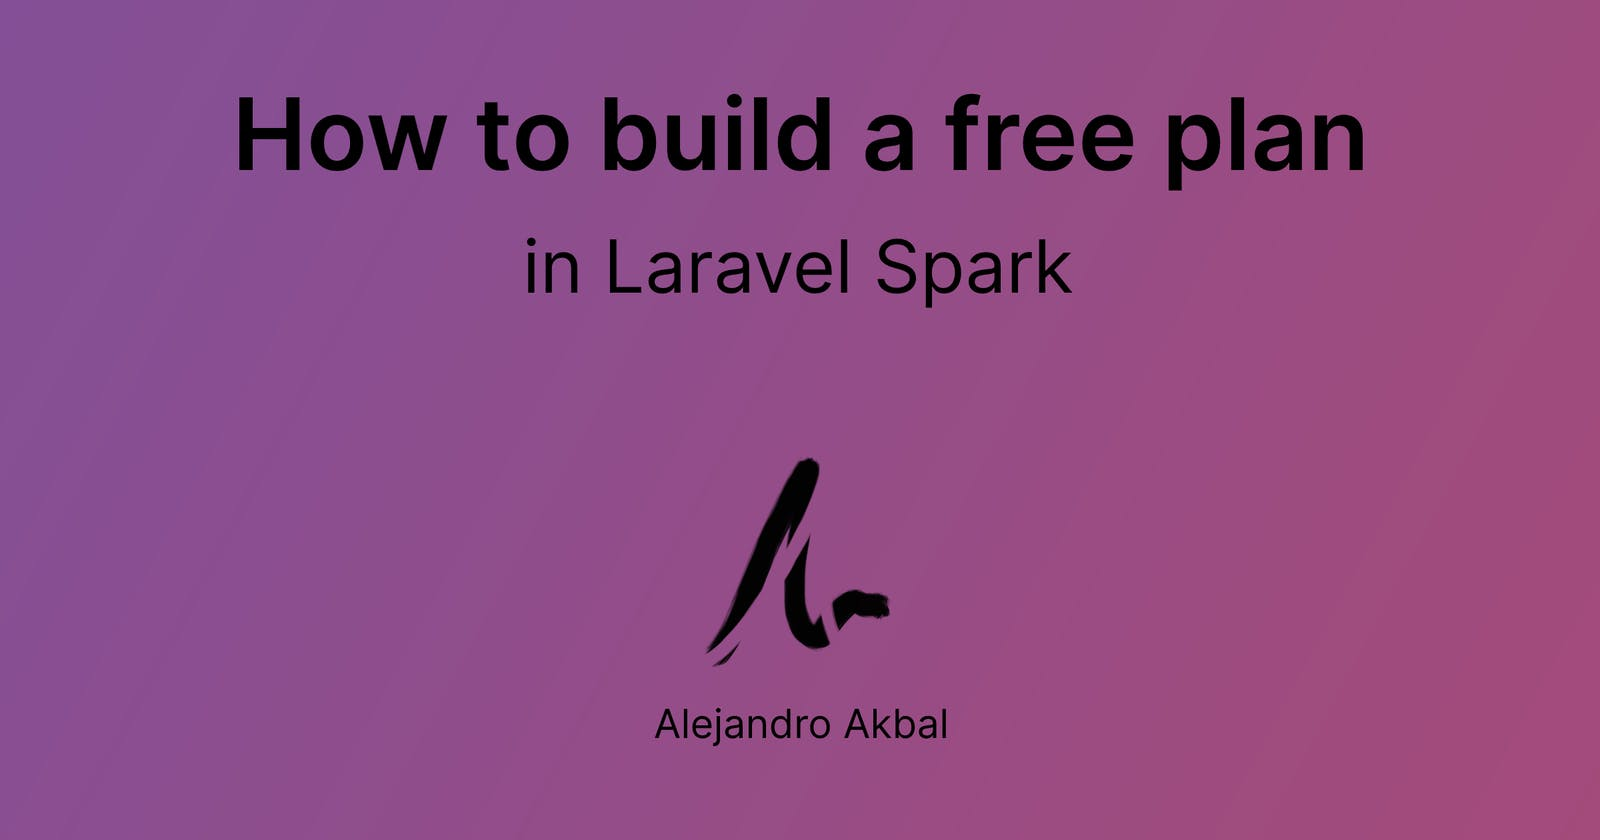 How to build a free plan in Laravel Spark